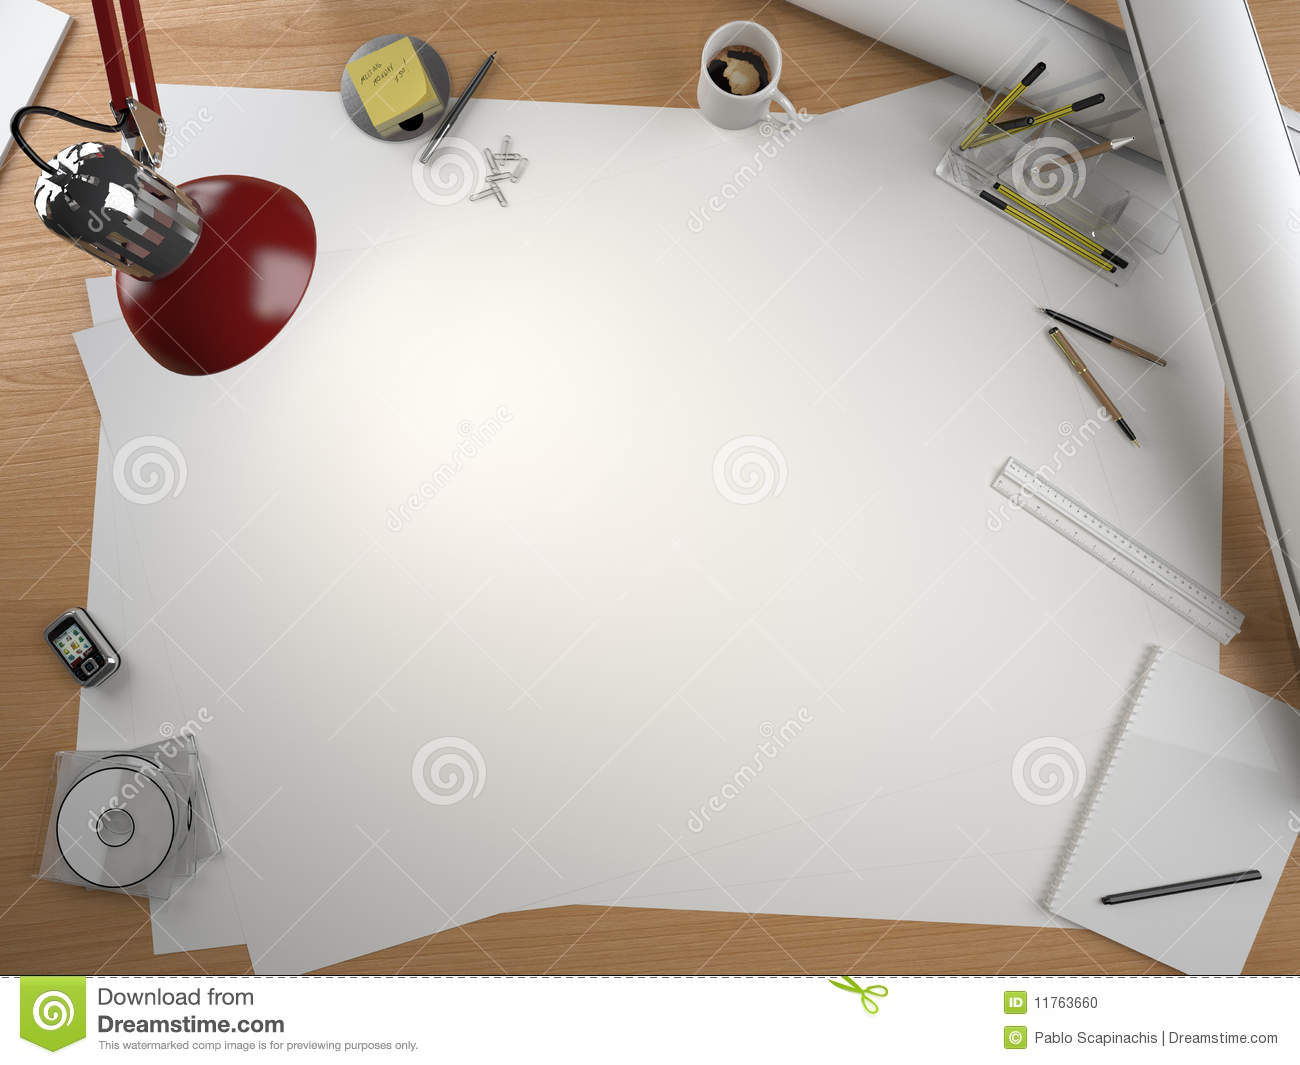 Designer drawing table with lots of elements and a centered copy space